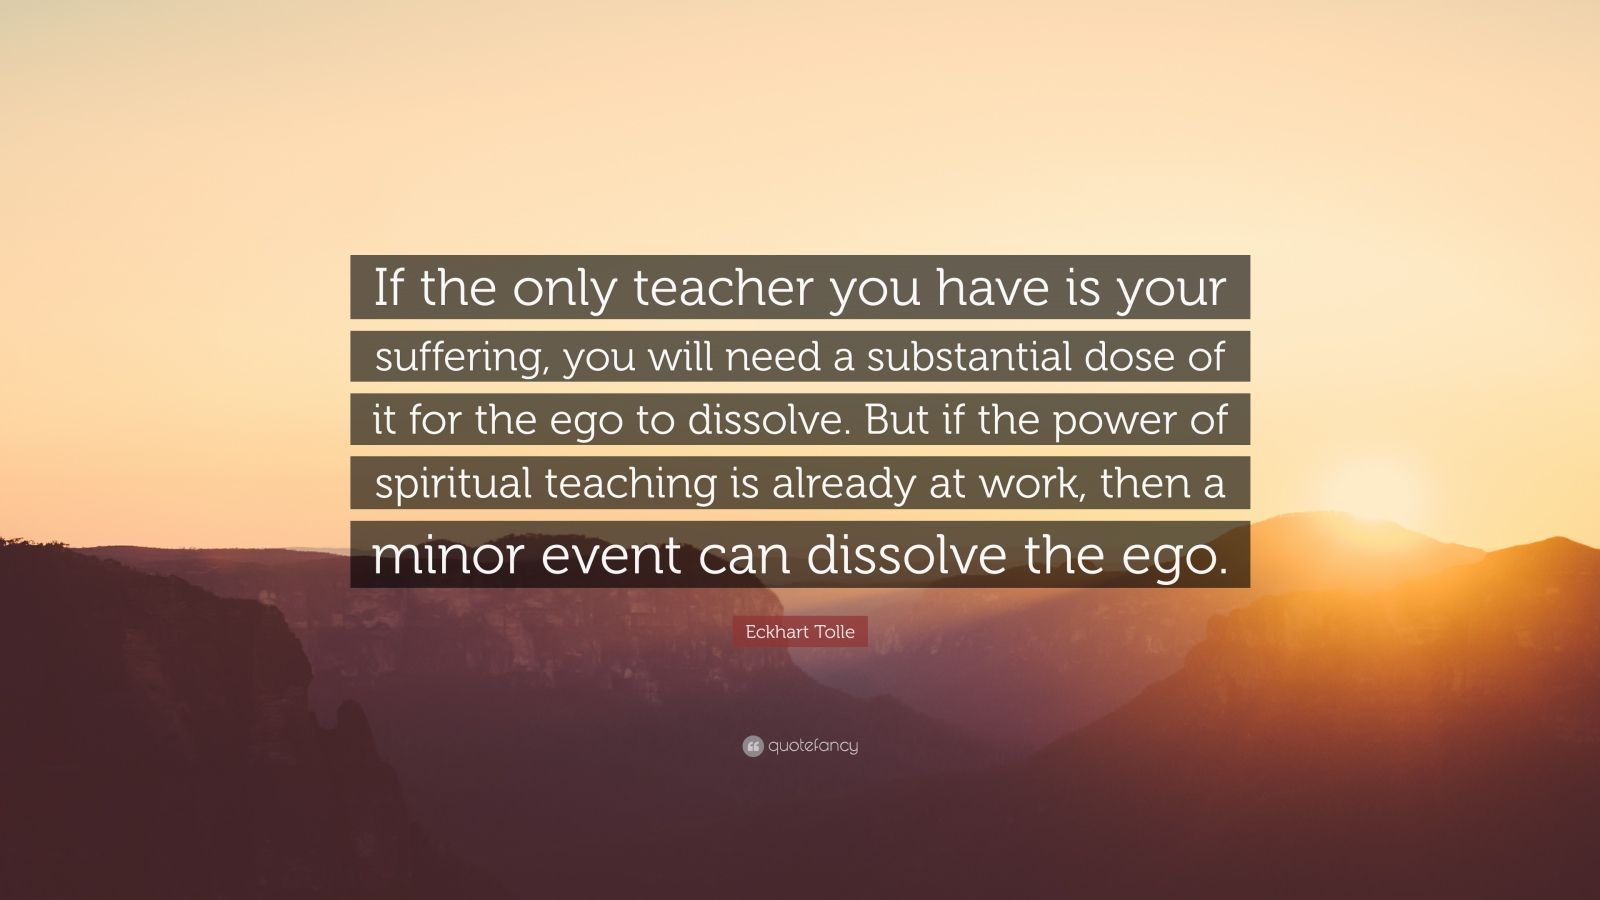 """Eckhart Tolle Quote: """"If the only teacher you have is your suffering, you will need a substantial dose of it for the ego to dissolve. But if the power of spiritual teaching is already at work, then a minor event can dissolve the ego."""""""